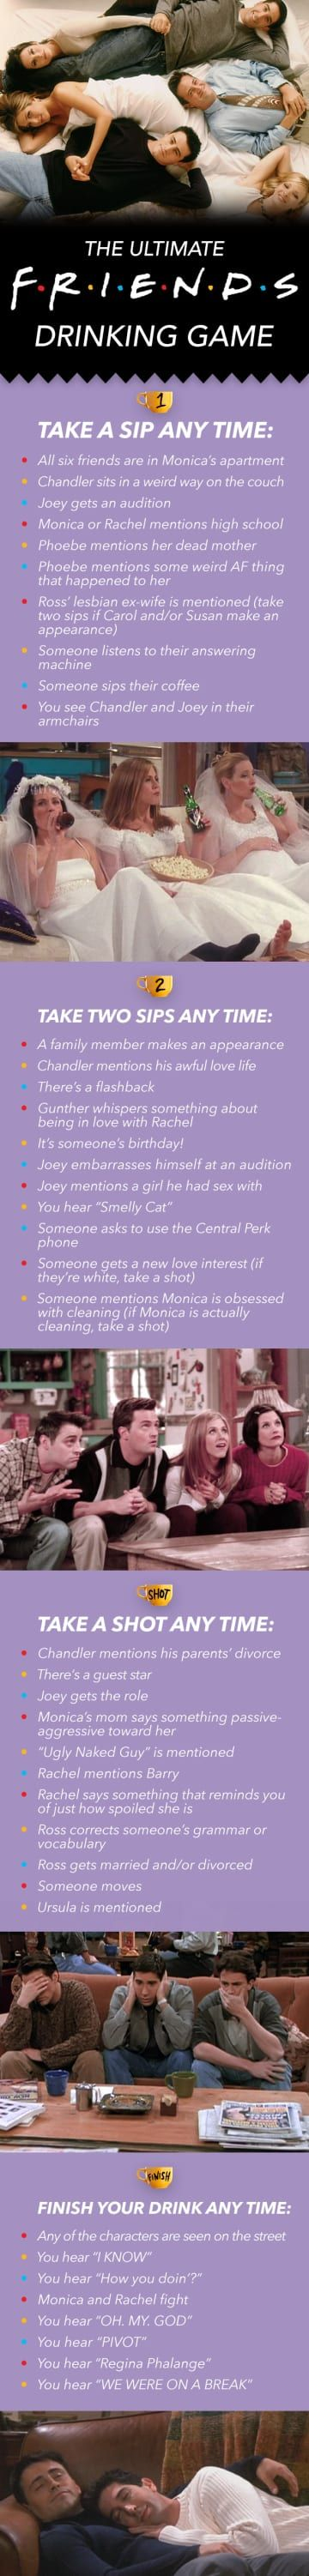 "Photo of The Ultimate ""Friends"" Drinking Game"